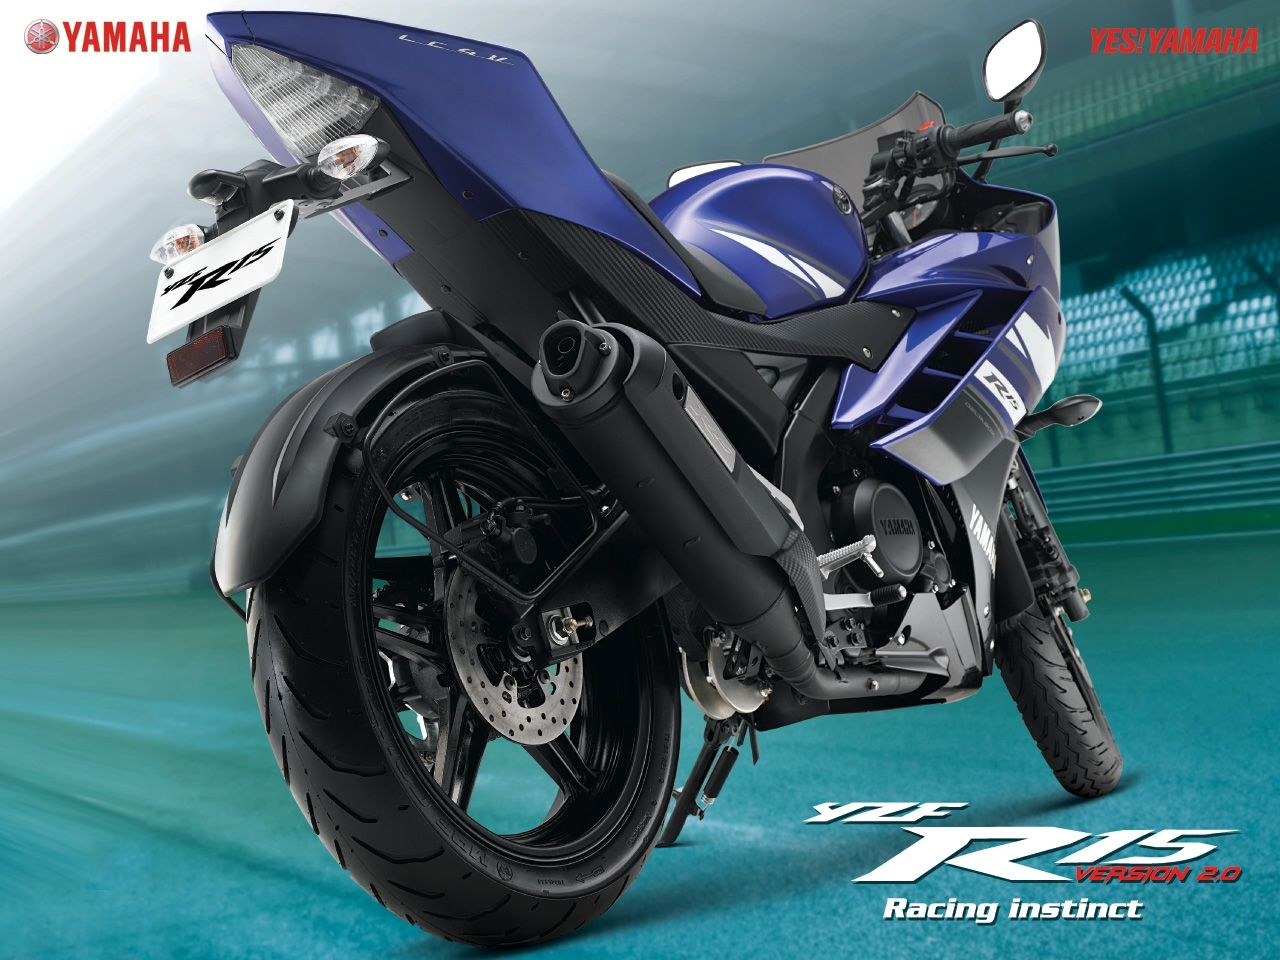 3d Wallpaper Of Yamaha R15 Hd Download 3d Wallpaper Of Yamaha